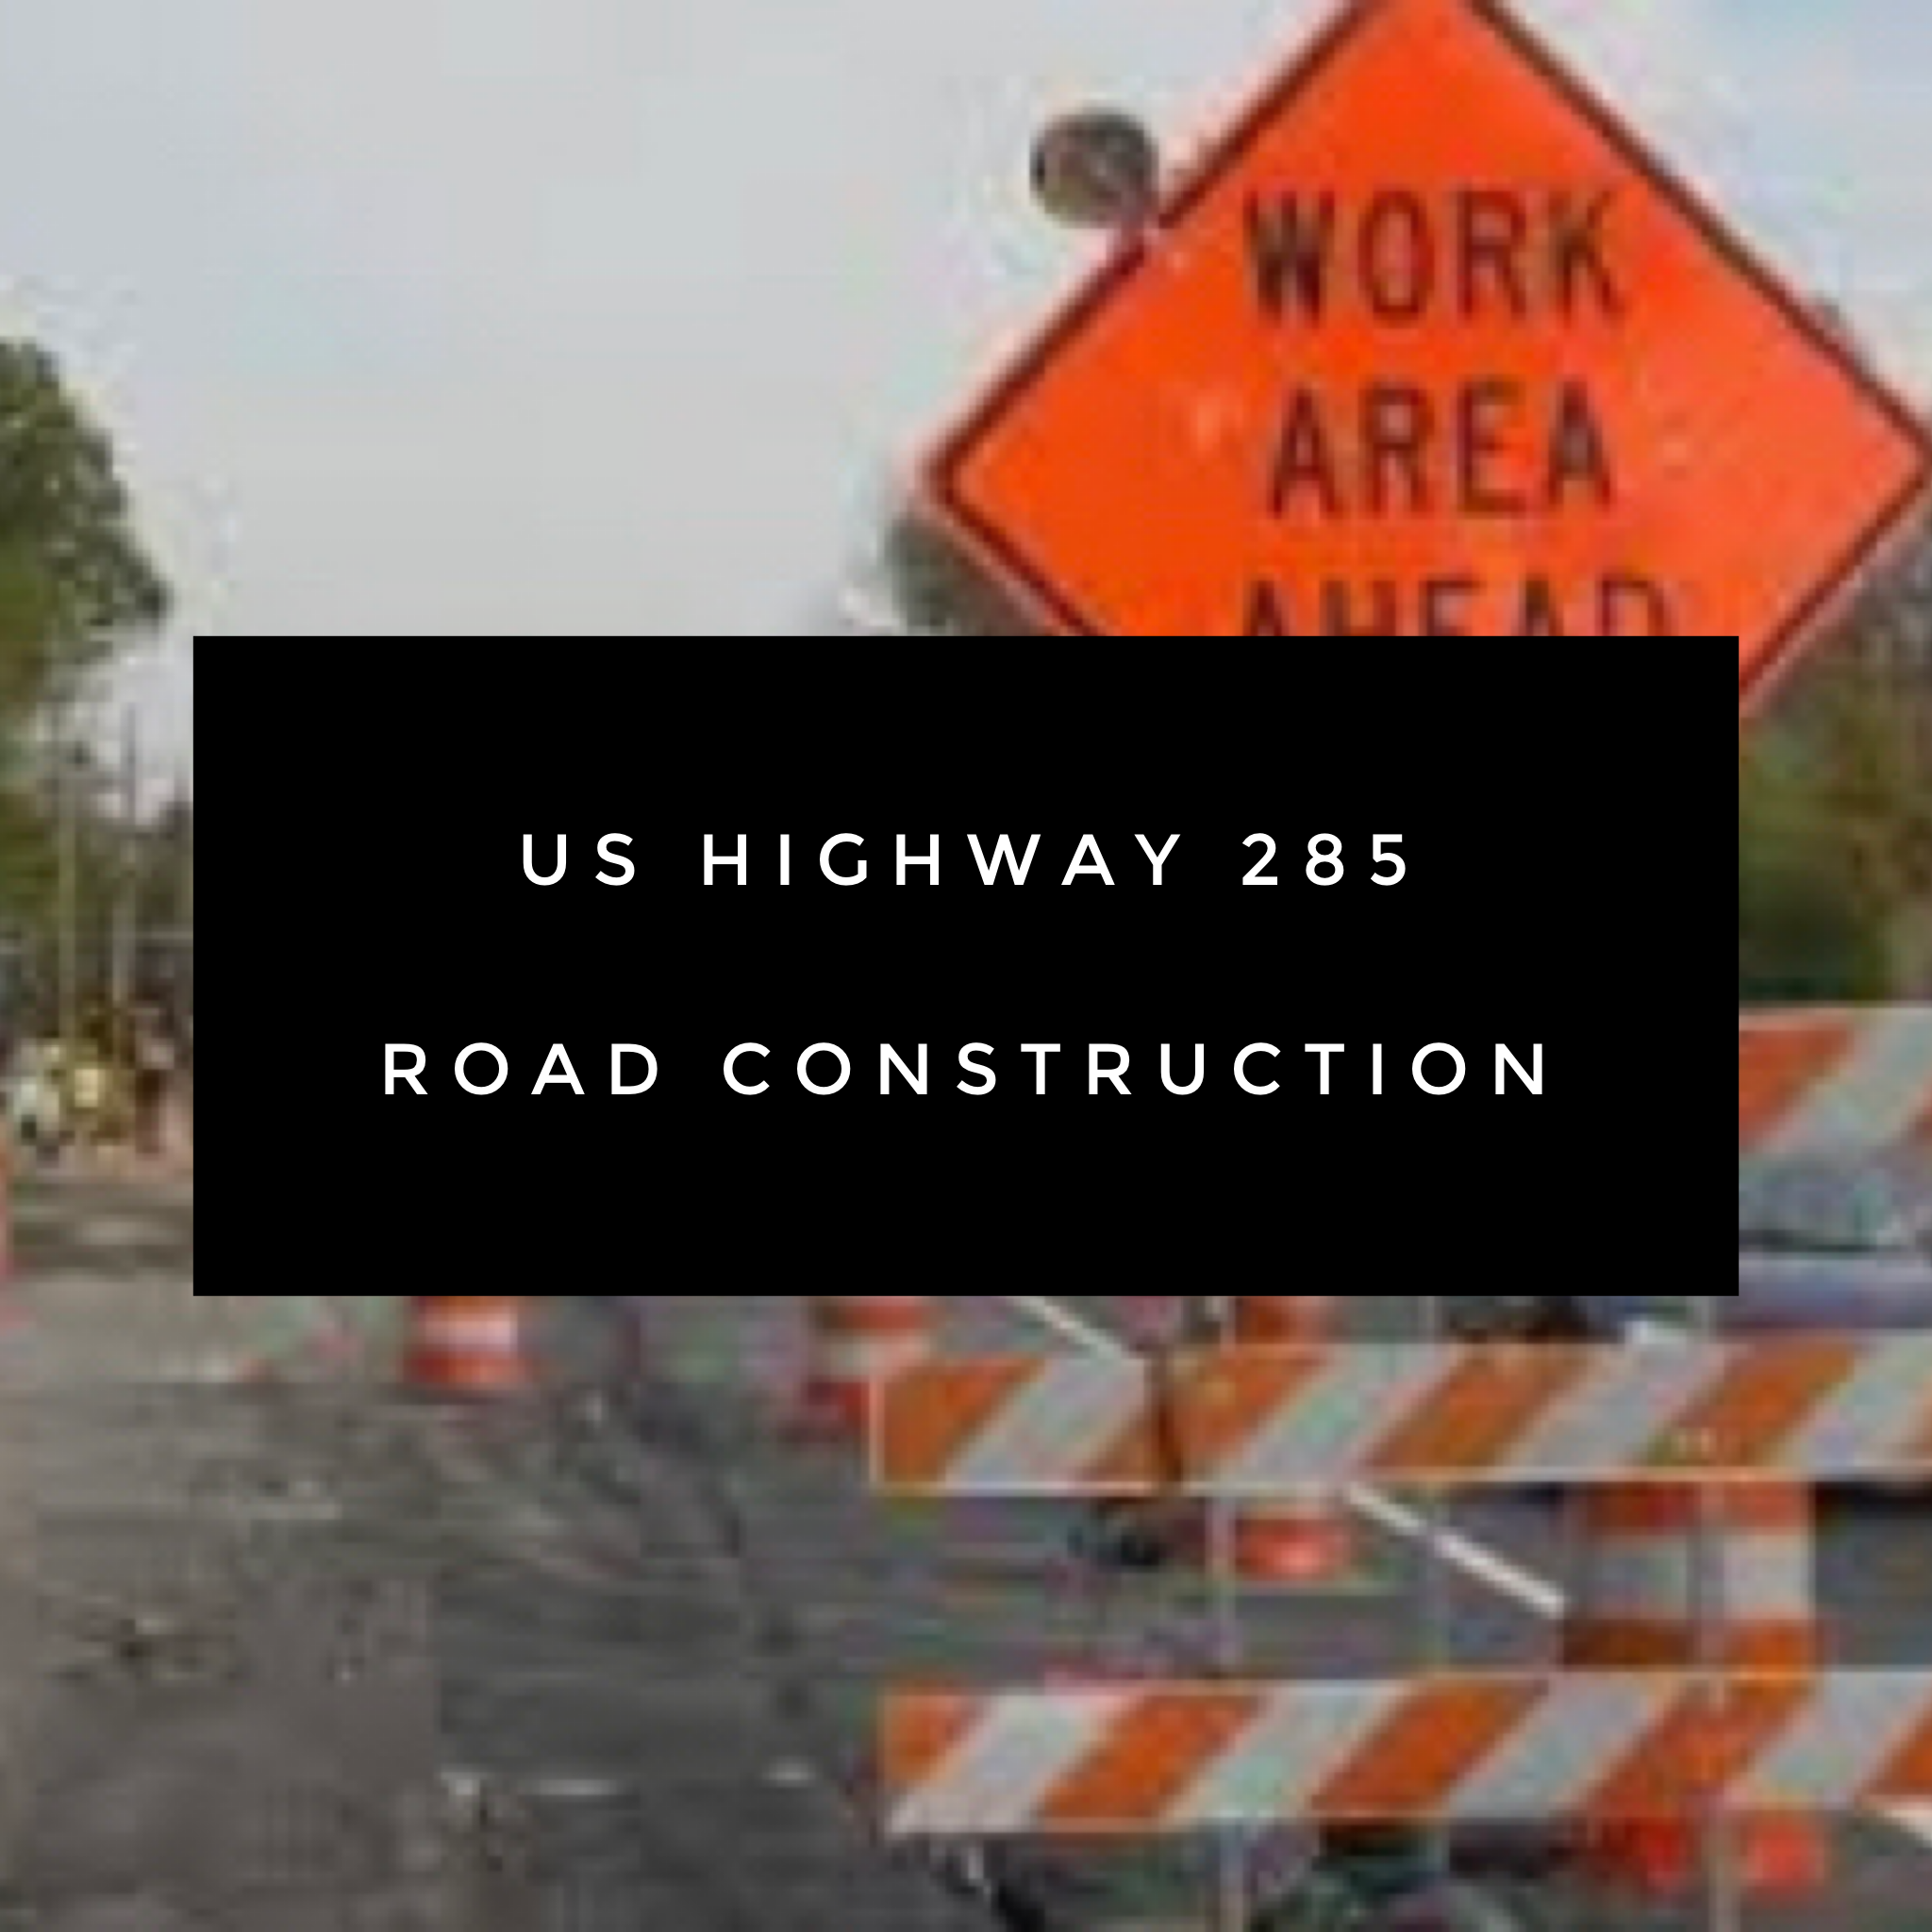 US Highway 285 Road Construction